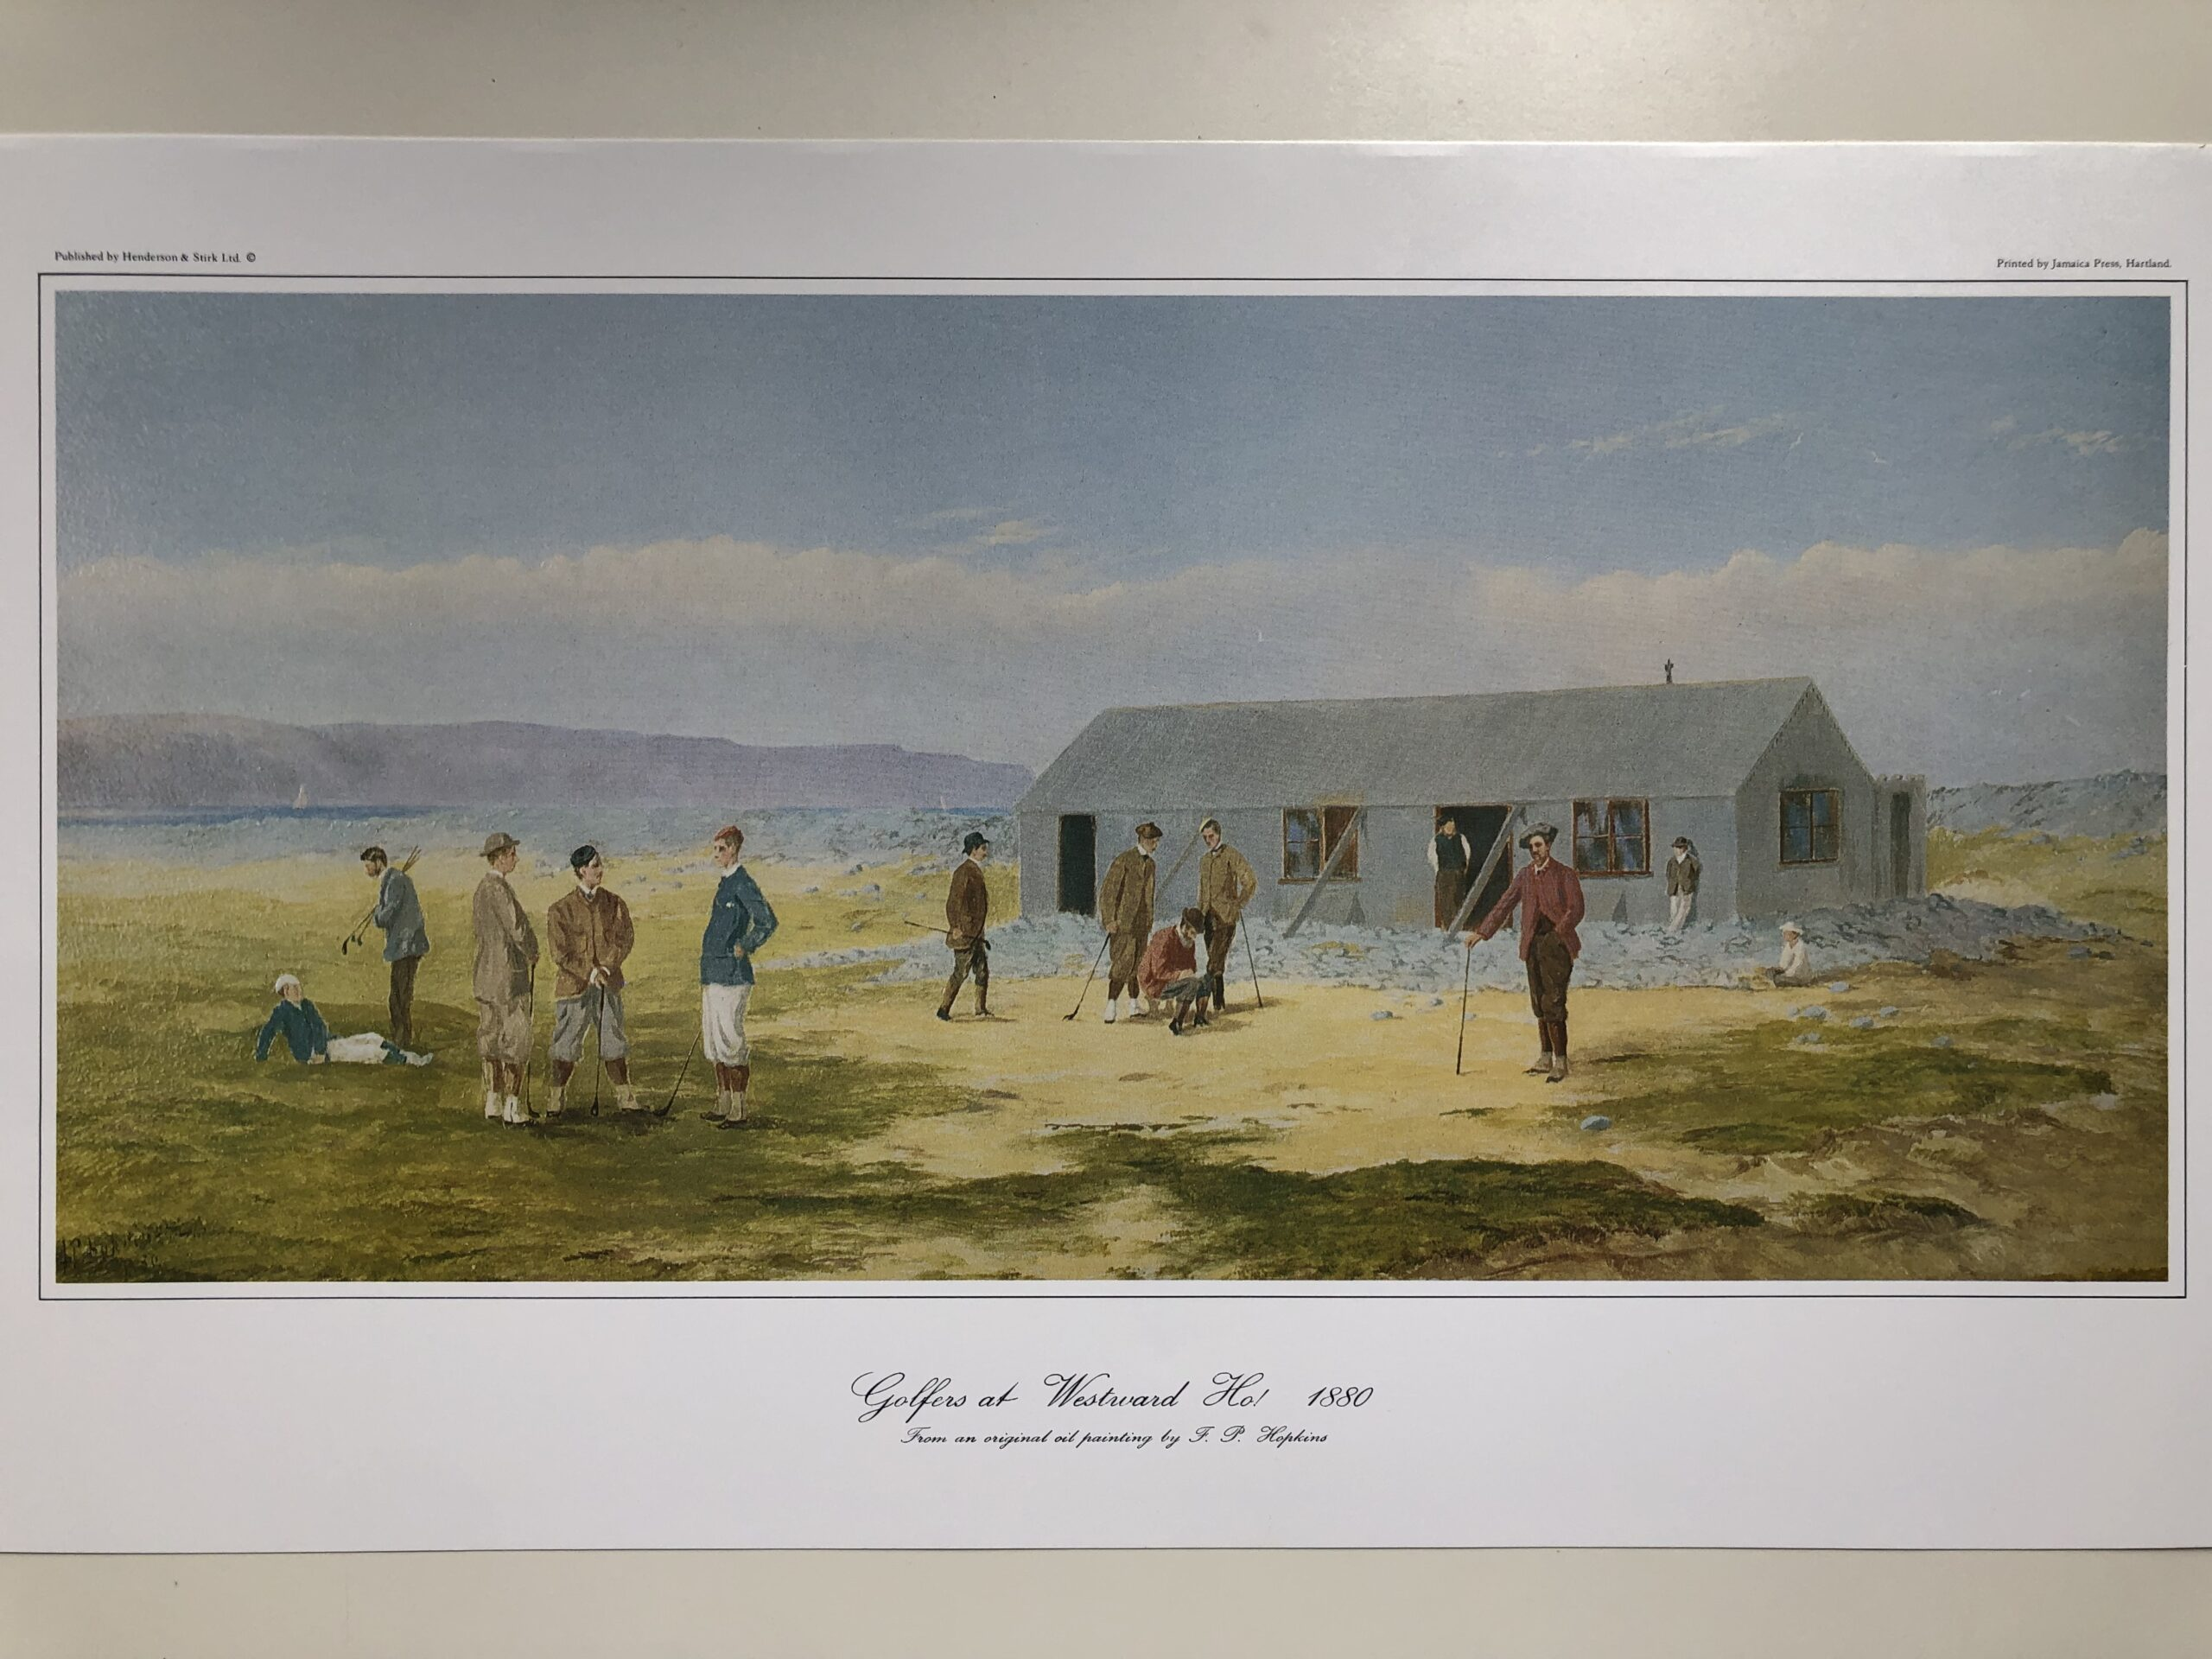 Golfers at Westward Ho! Print